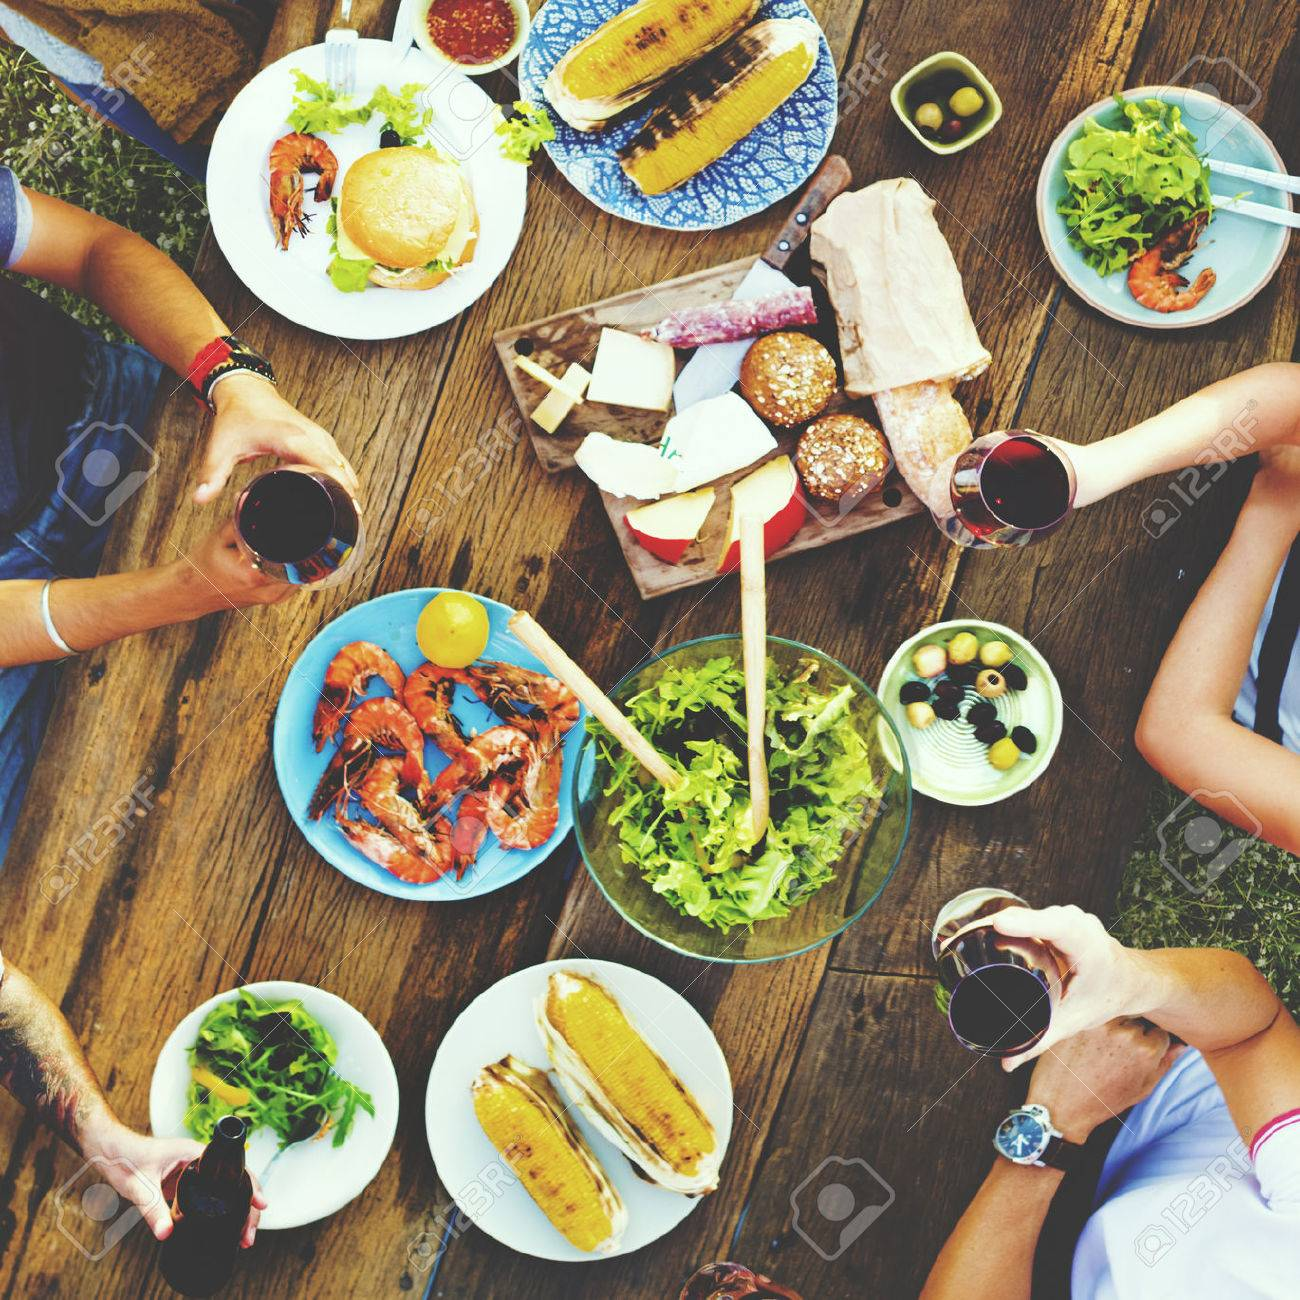 Friends Friendship Outdoor Dining People Concept - 53033079